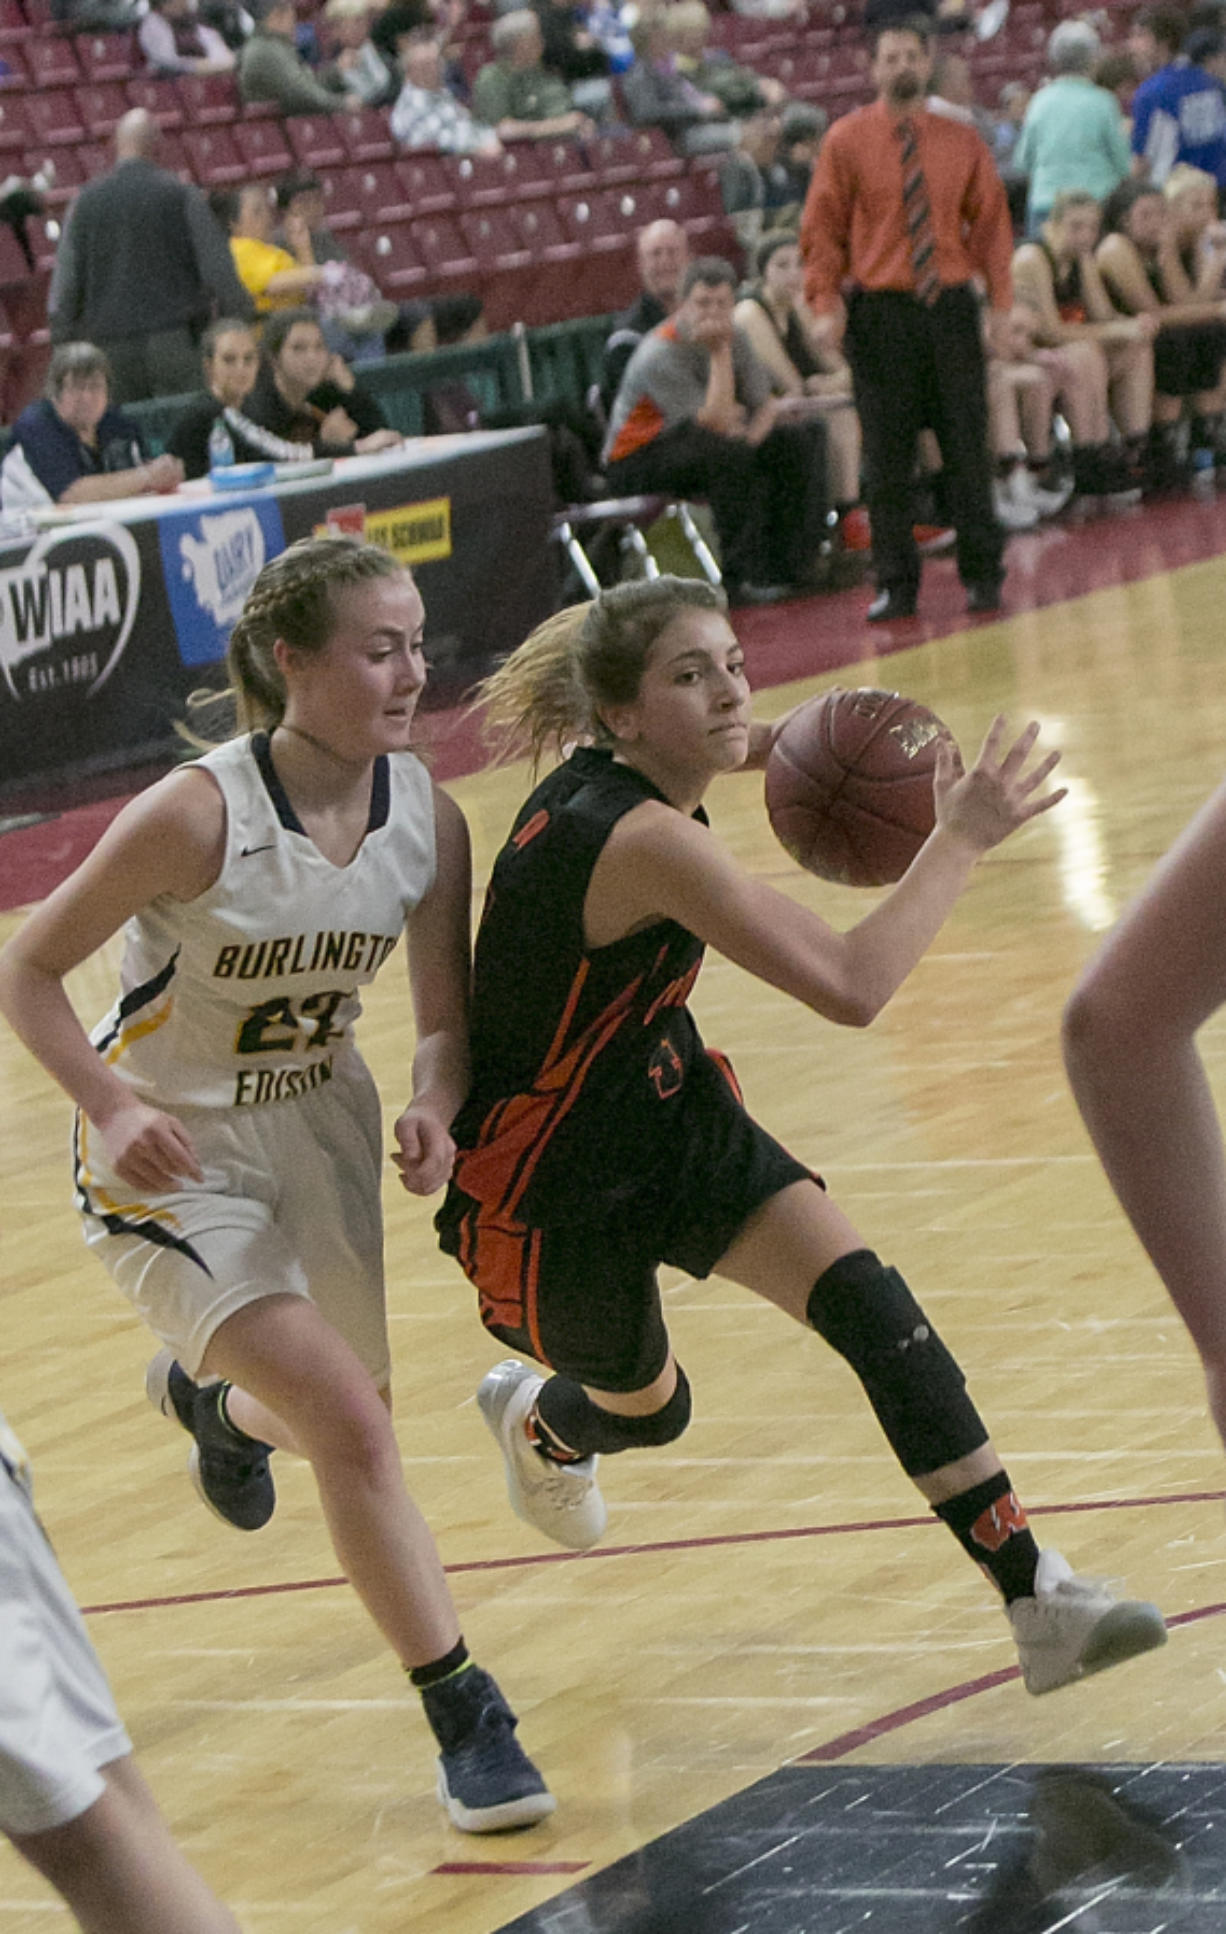 Washougal guard Mason Oberg (4), drives to the hoop before being blocked during the second round of the WIAA 2A girls state tournament on Thursday, Mar. 2, 2017, at the Yakima Valley SunDome. The Burlington-Edison Tigers defeated the Washougal Panthers 58-55.